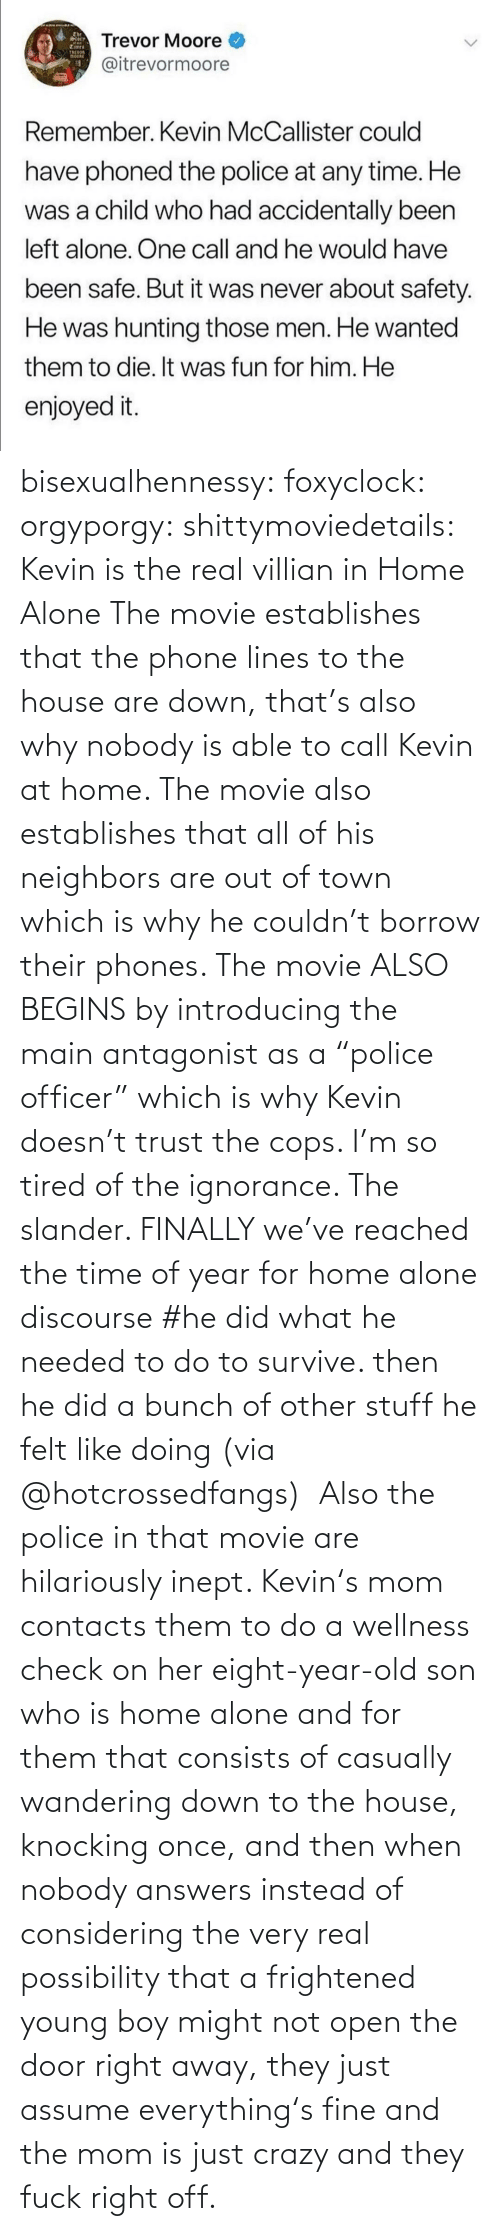 "Being Alone, Crazy, and Home Alone: The  Trevor Moore O  @itrevormoore  Tmes  TREDOR  moORE  Remember. Kevin McCallister could  have phoned the police at any time. He  was a child who had accidentally been  left alone. One call and he would have  been safe. But it was never about safety.  He was hunting those men. He wanted  them to die. It was fun for him. He  enjoyed it. bisexualhennessy:  foxyclock:  orgyporgy:  shittymoviedetails: Kevin is the real villian in Home Alone The movie establishes that the phone lines to the house are down, that's also why nobody is able to call Kevin at home. The movie also establishes that all of his neighbors are out of town which is why he couldn't borrow their phones. The movie ALSO BEGINS by introducing the main antagonist as a ""police officer"" which is why Kevin doesn't trust the cops. I'm so tired of the ignorance. The slander.    FINALLY we've reached the time of year for home alone discourse  #he did what he needed to do to survive. then he did a bunch of other stuff he felt like doing (via @hotcrossedfangs)   Also the police in that movie are hilariously inept. Kevin's mom contacts them to do a wellness check on her eight-year-old son who is home alone and for them that consists of casually wandering down to the house, knocking once, and then when nobody answers instead of considering the very real possibility that a frightened young boy might not open the door right away, they just assume everything's fine and the mom is just crazy and they fuck right off."